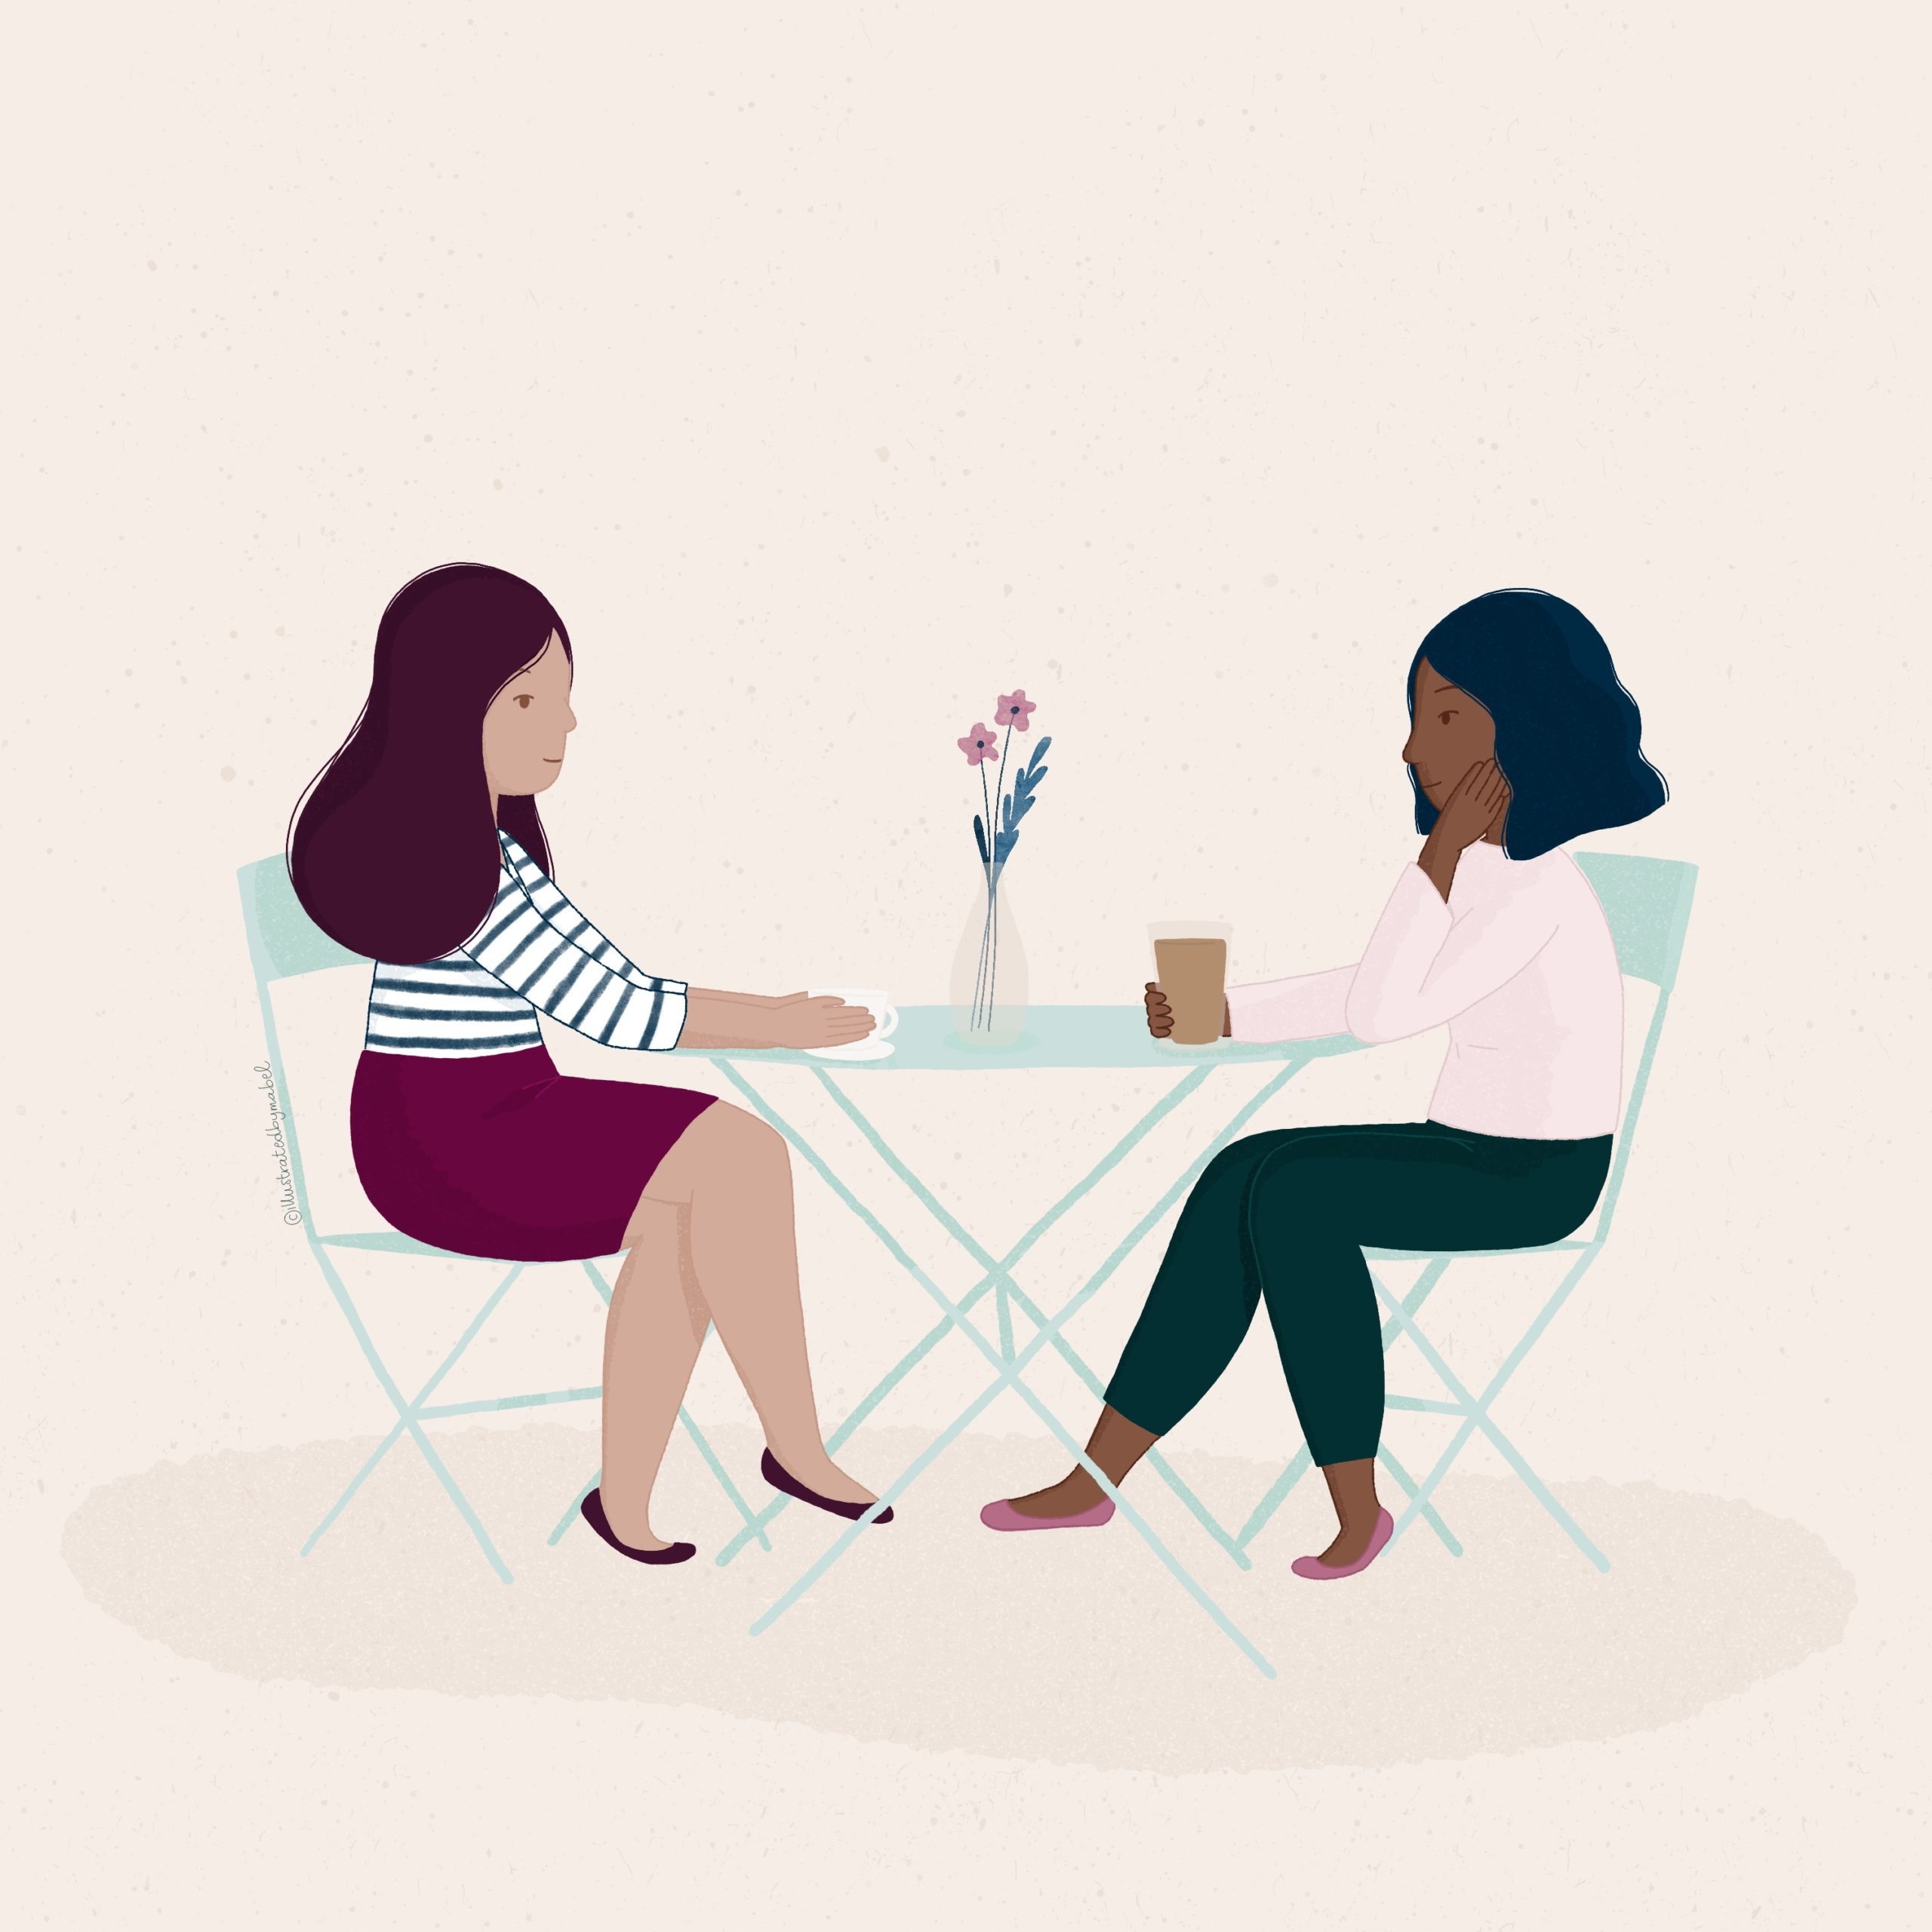 illustrations of two girls chatting at a coffee shop table